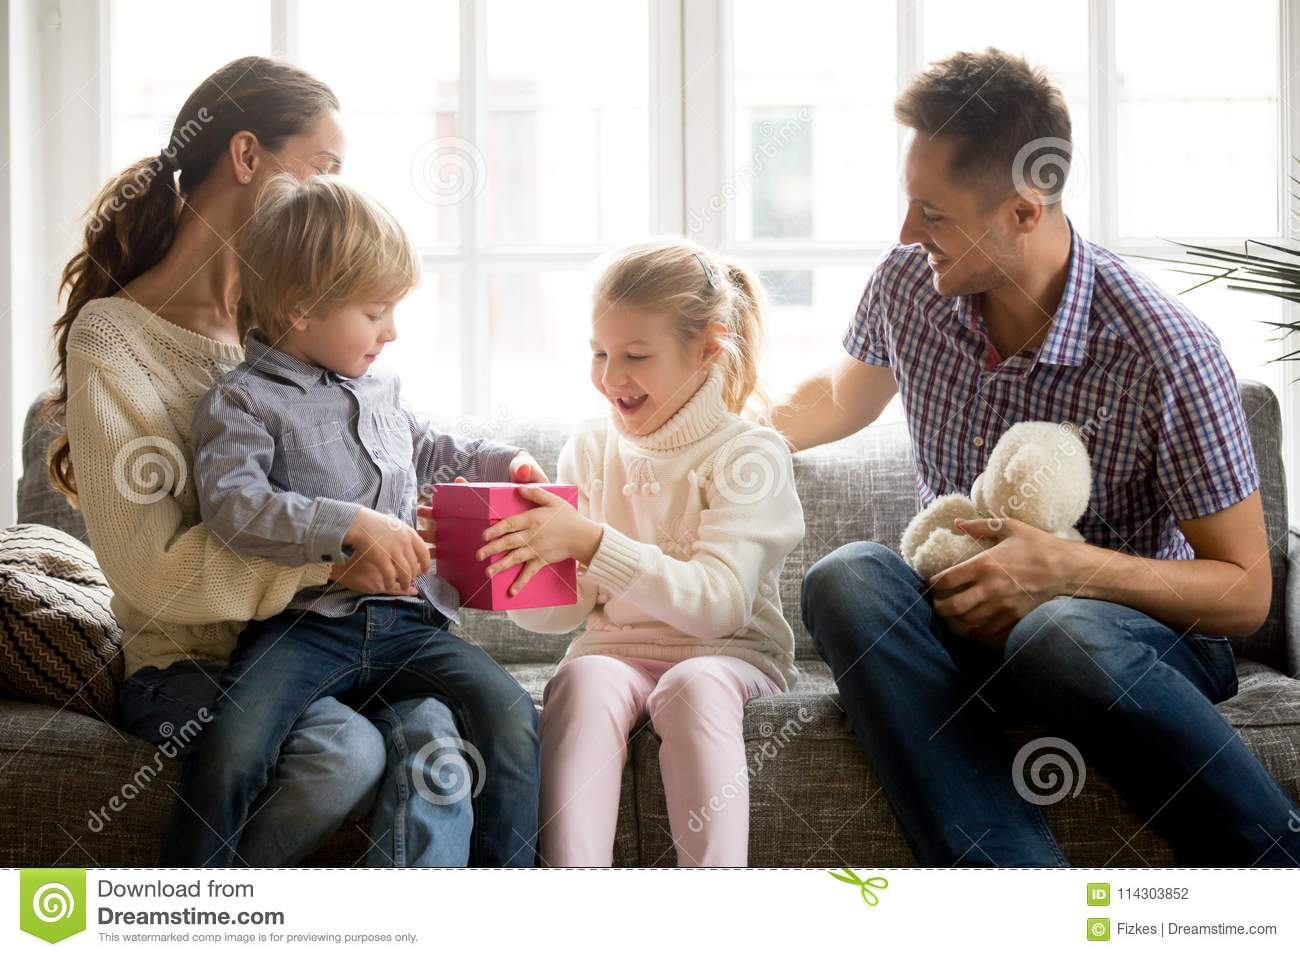 Sister Presenting Gift For Little Brother Giving Cute Boy Box With Present Excited Kid Girl Making Surprise Congratulating Happy Family And